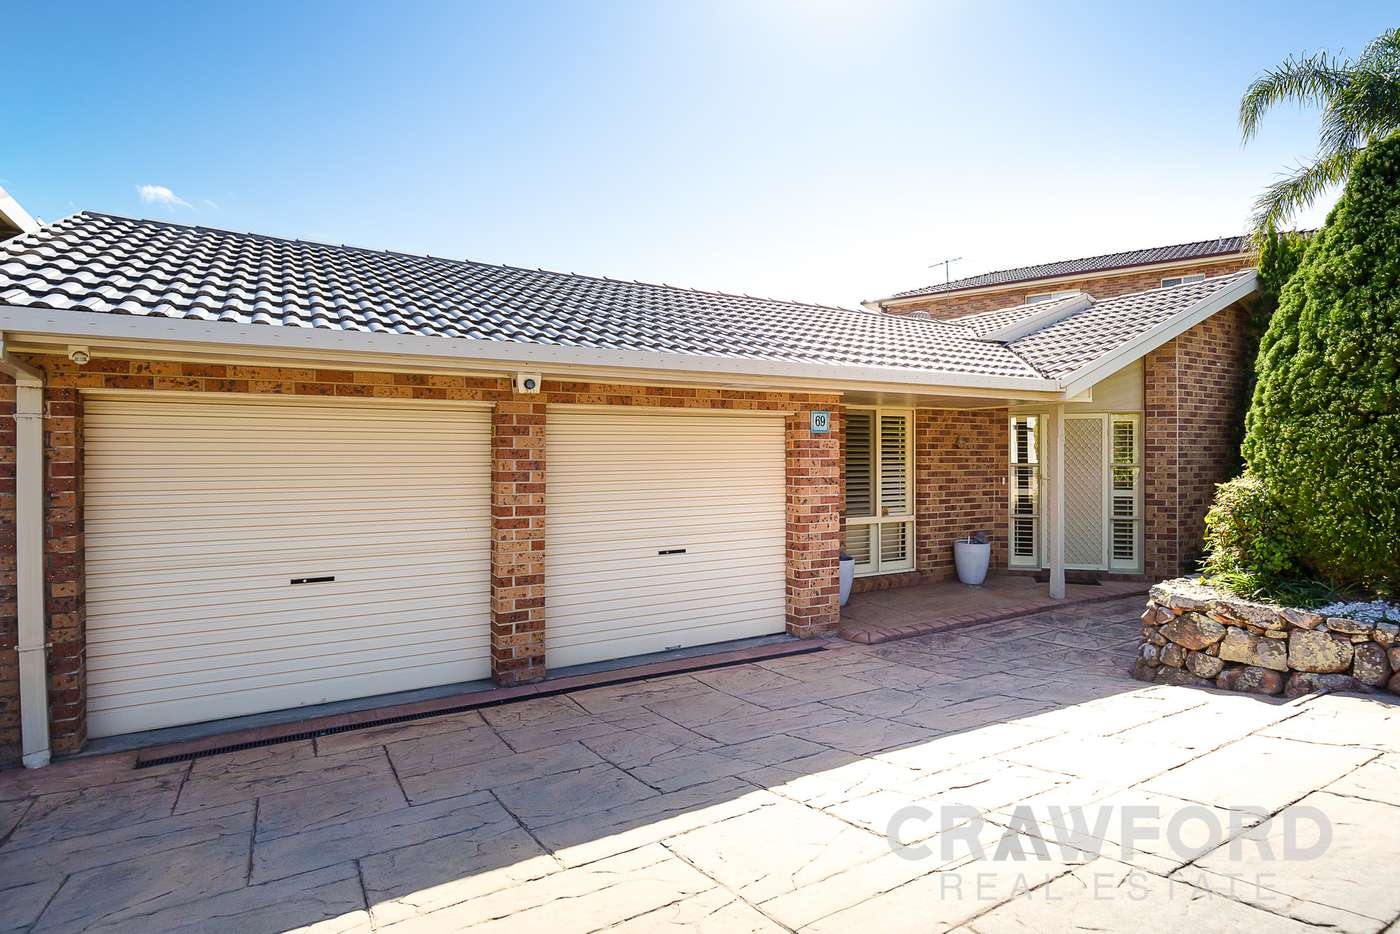 Main view of Homely house listing, 69 Birchgrove Drive, Wallsend NSW 2287